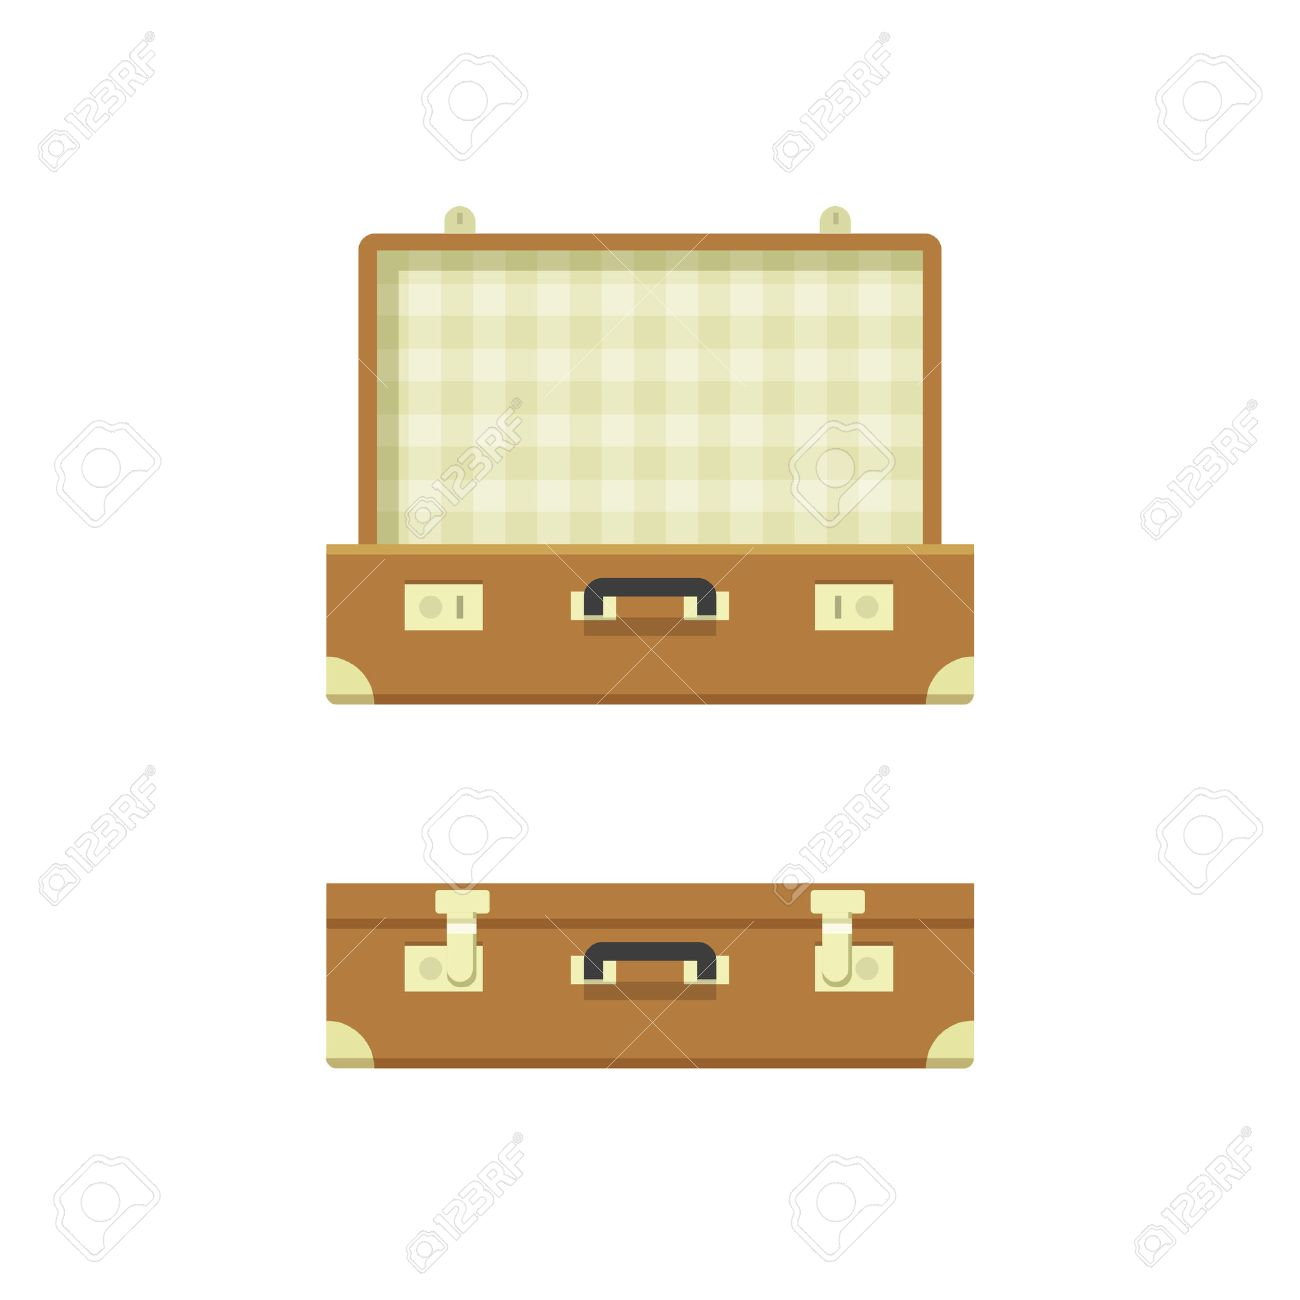 Suitcase open, suitcase closed vector illustration isolated on white background, textured suitcase opened and closed, travel suitcases flat cartoon case design - 55786314